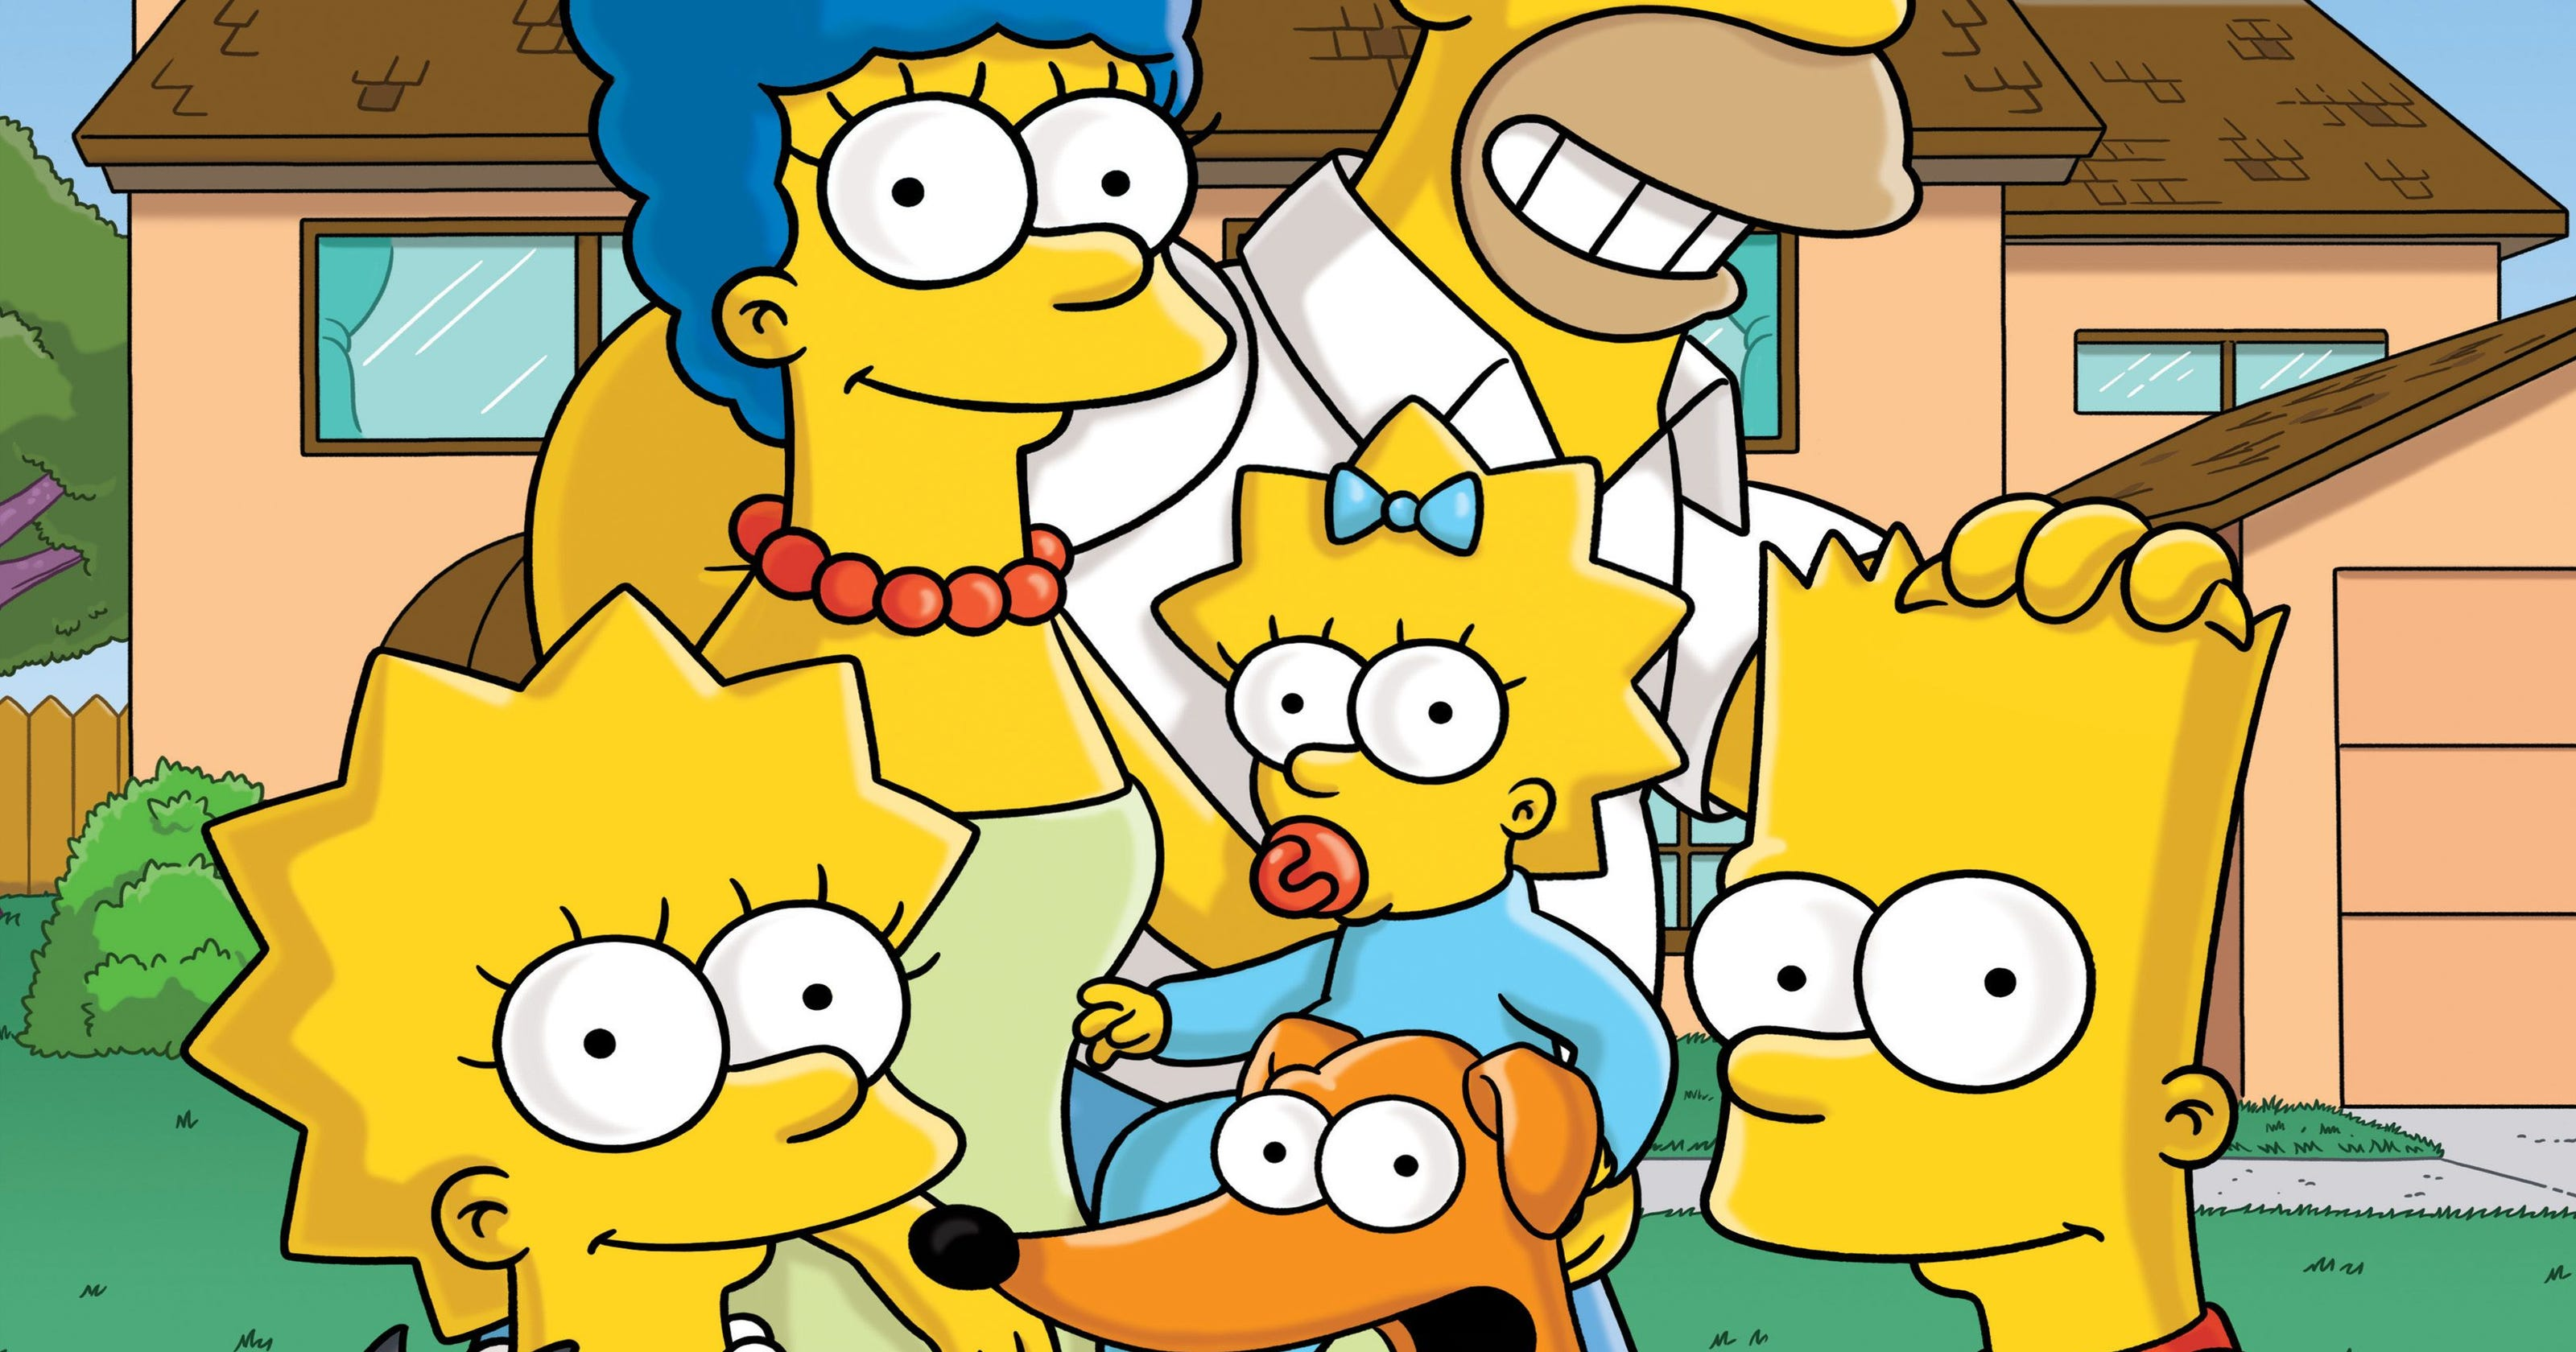 The Simpsons Matt Groening shares top characters